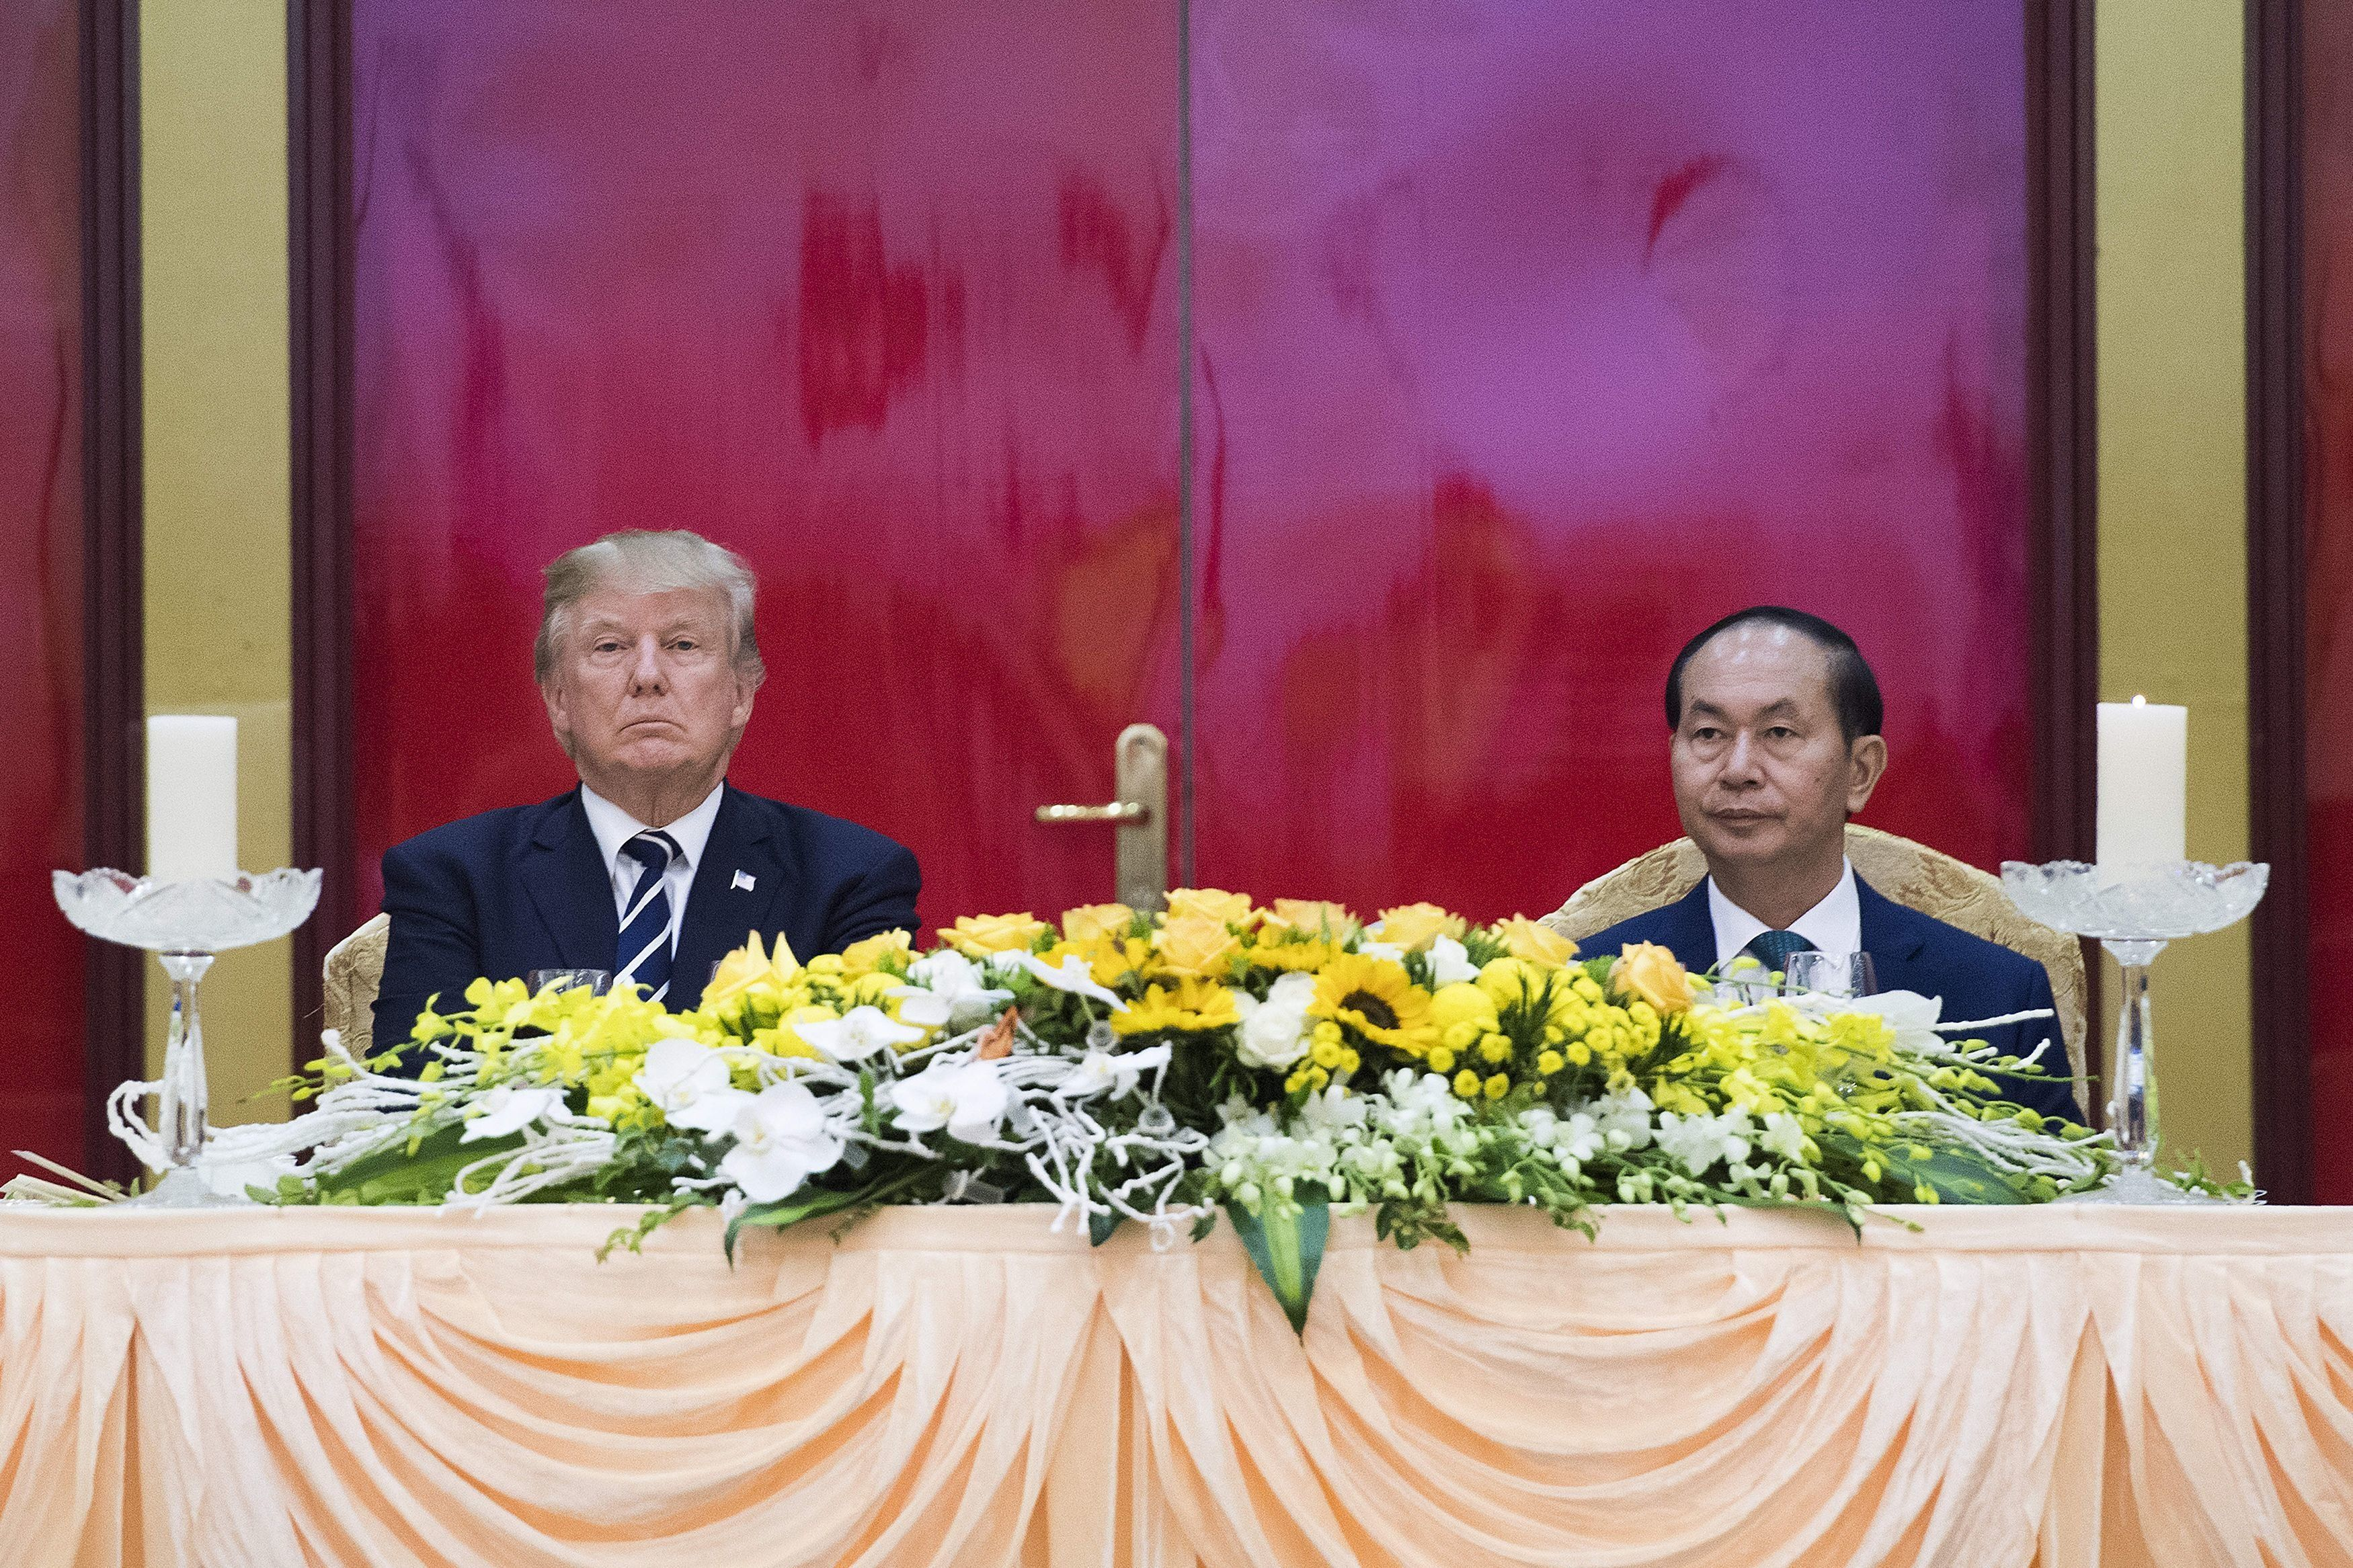 Vietnamese President Tran Dai Quang (R) and US President Donald Trump attend a state dinner in Hanoi on November 11, 2017.  Trump arrived in the Vietnamese capital after attending the Asia-Pacific Economic Cooperation (APEC) Summit leaders meetings earlier in the day in Danang. / AFP PHOTO / JIM WATSON        (Photo credit should read JIM WATSON/AFP/Getty Images)